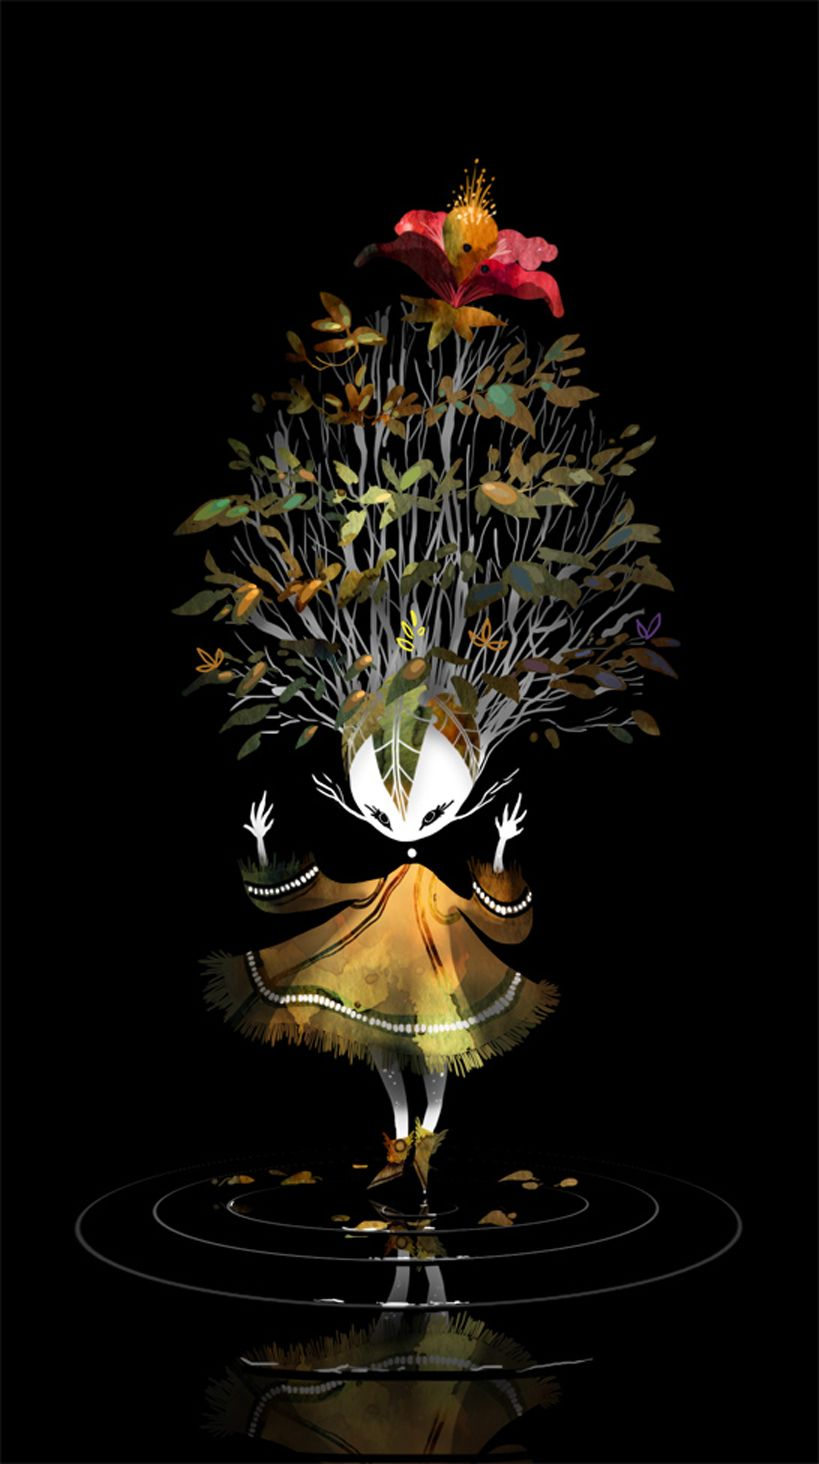 Reminds me of something from the Disney's Alice in Wonderland. The Art Of Animation, Camille André